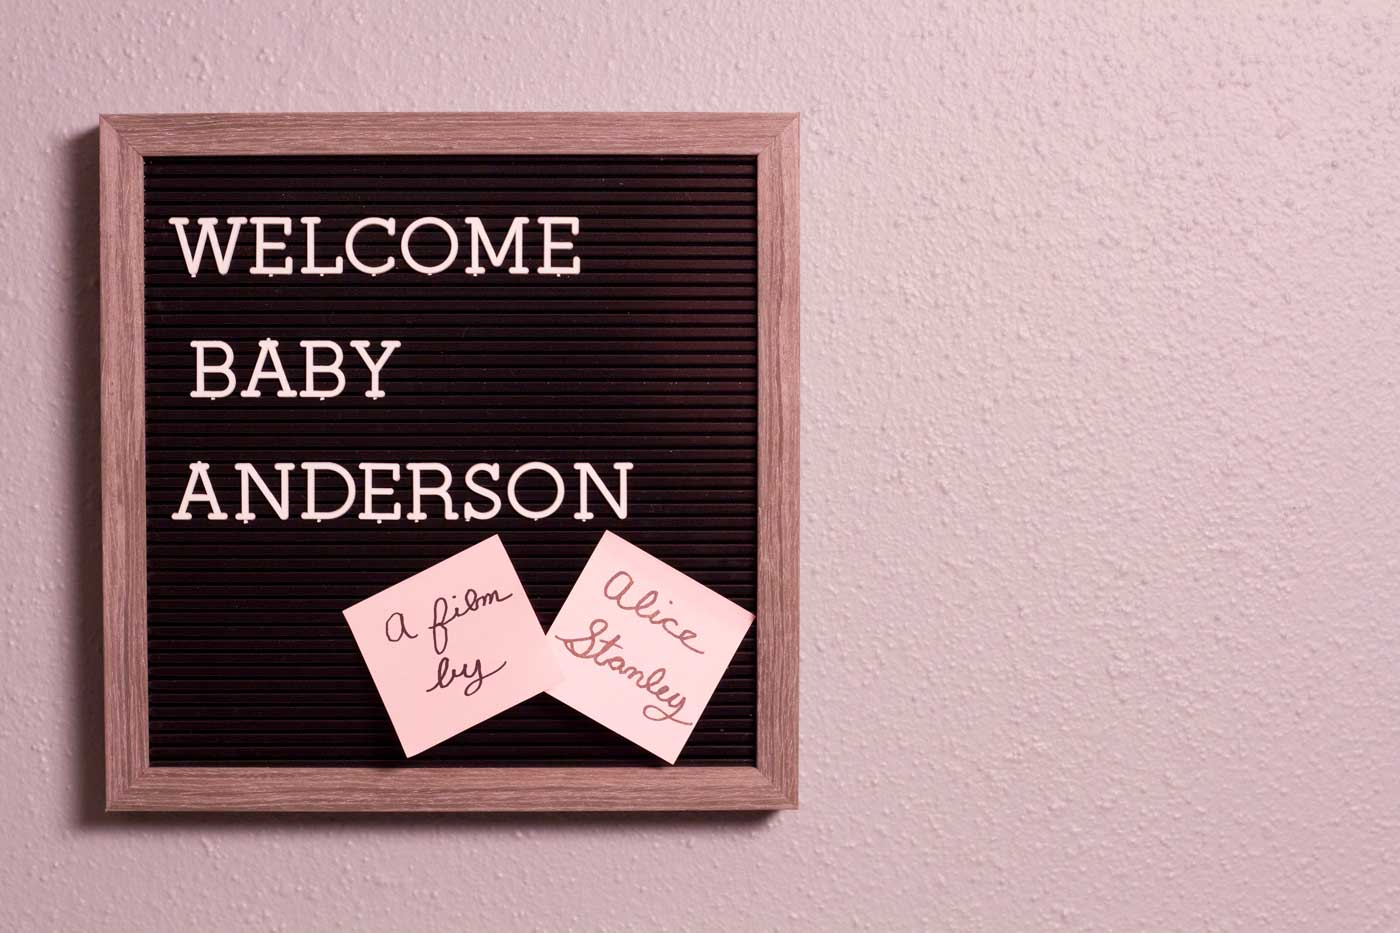 Welcome Baby Anderson - Transforming Cinema